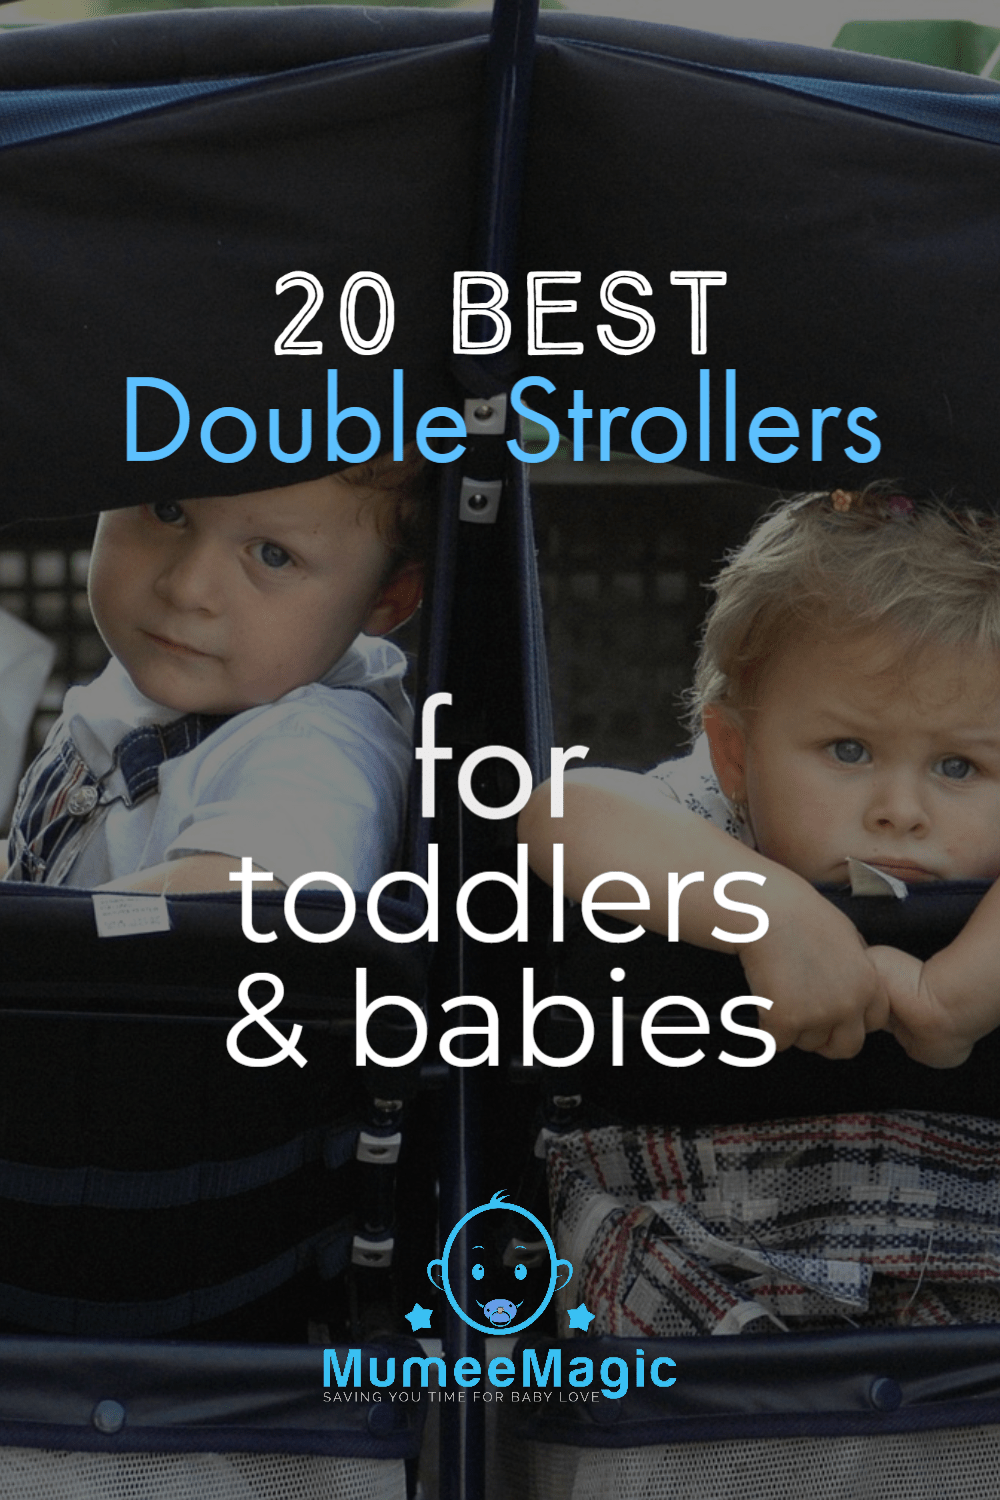 Double stroller For Toddlers and Babies